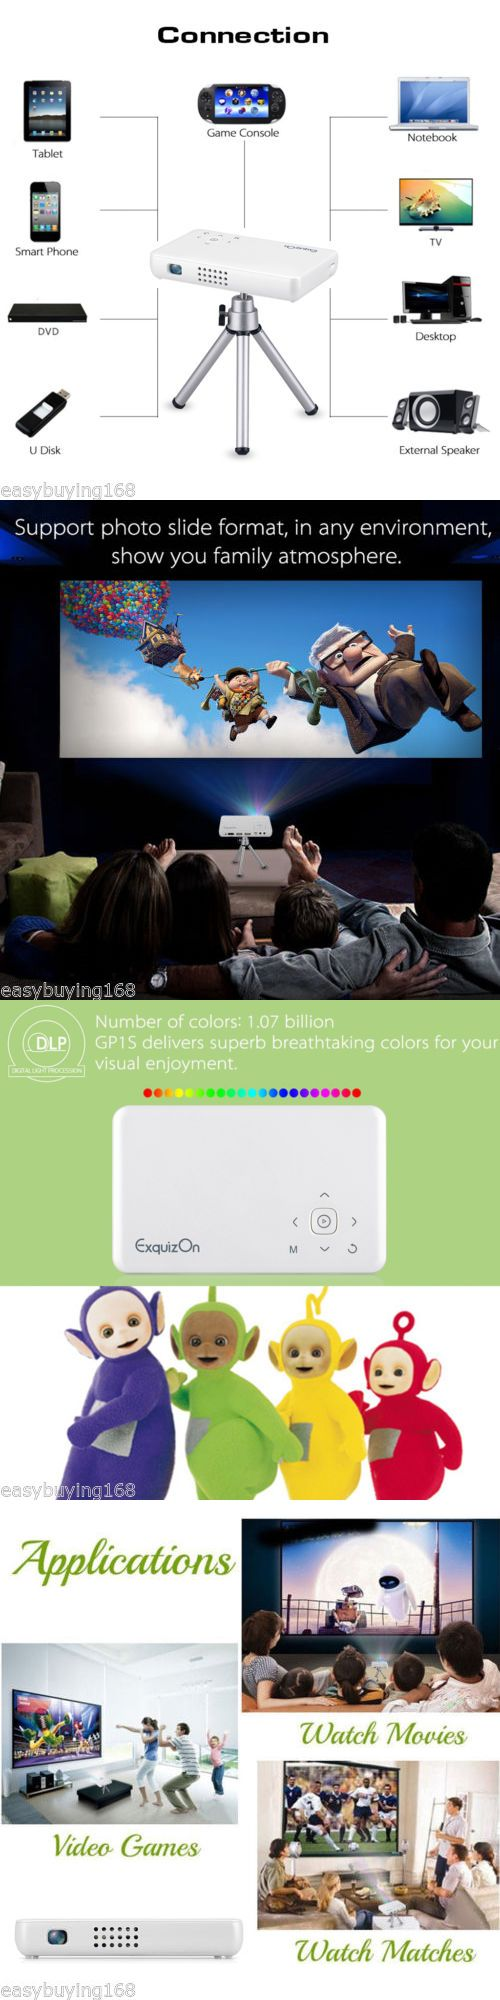 Home Theater Projectors: 5000 Lumens Hd 1080P Home Theater Projector Dlp Portable Sd Hdmi Vga Usb 10000:1 -> BUY IT NOW ONLY: $189.39 on eBay!